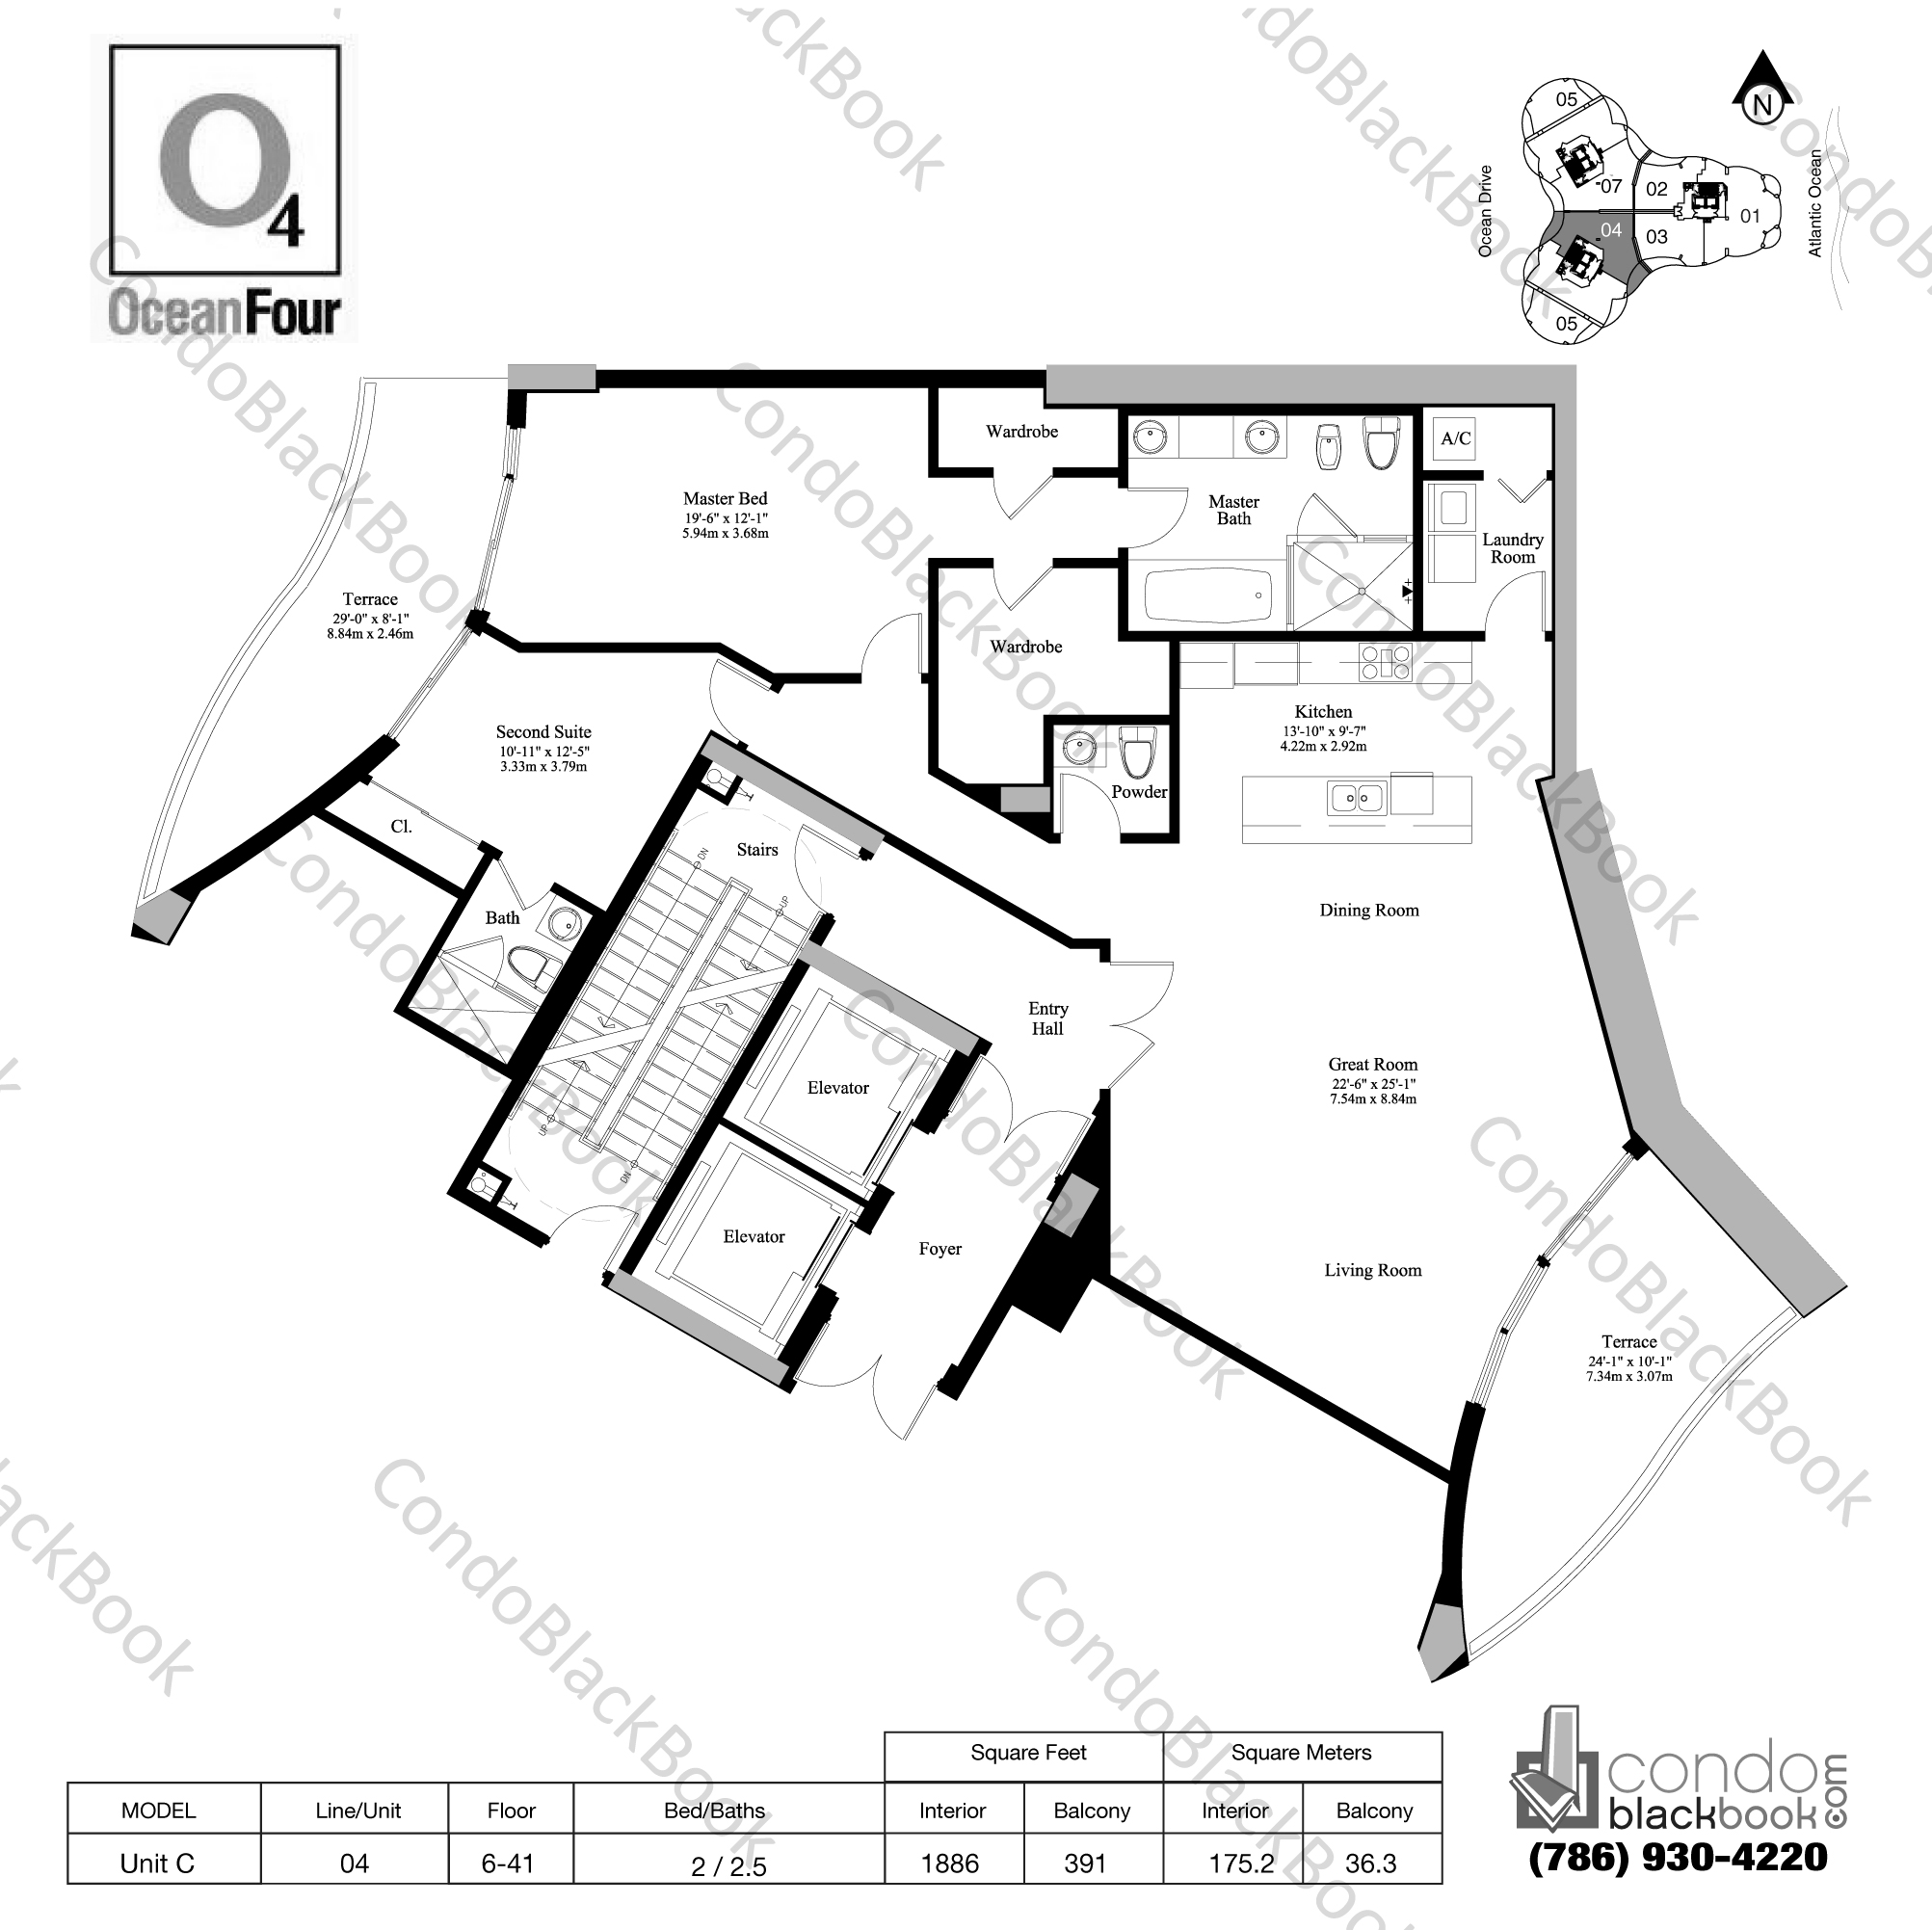 Floor plan for Ocean Four Sunny Isles Beach, model Unit C, line 04, 2 / 2.5 bedrooms, 1886 sq ft